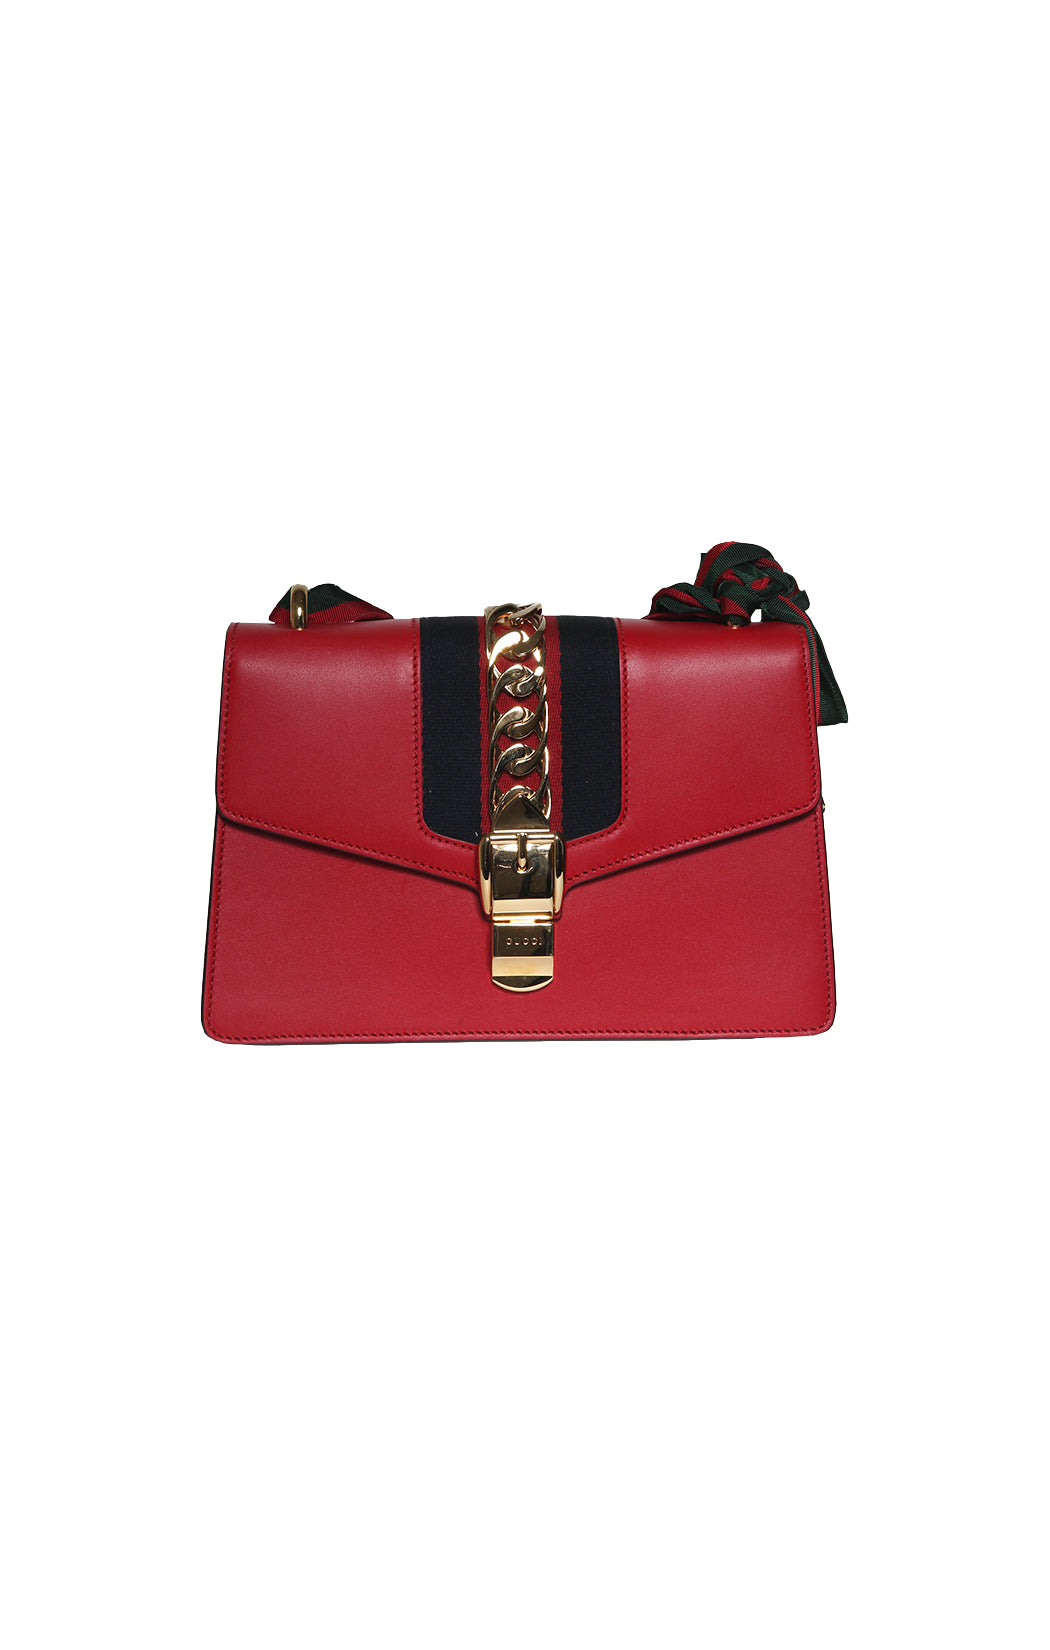 Front View of GUCCI  Purse Size: 10 in. x 6 in. x 3 in.